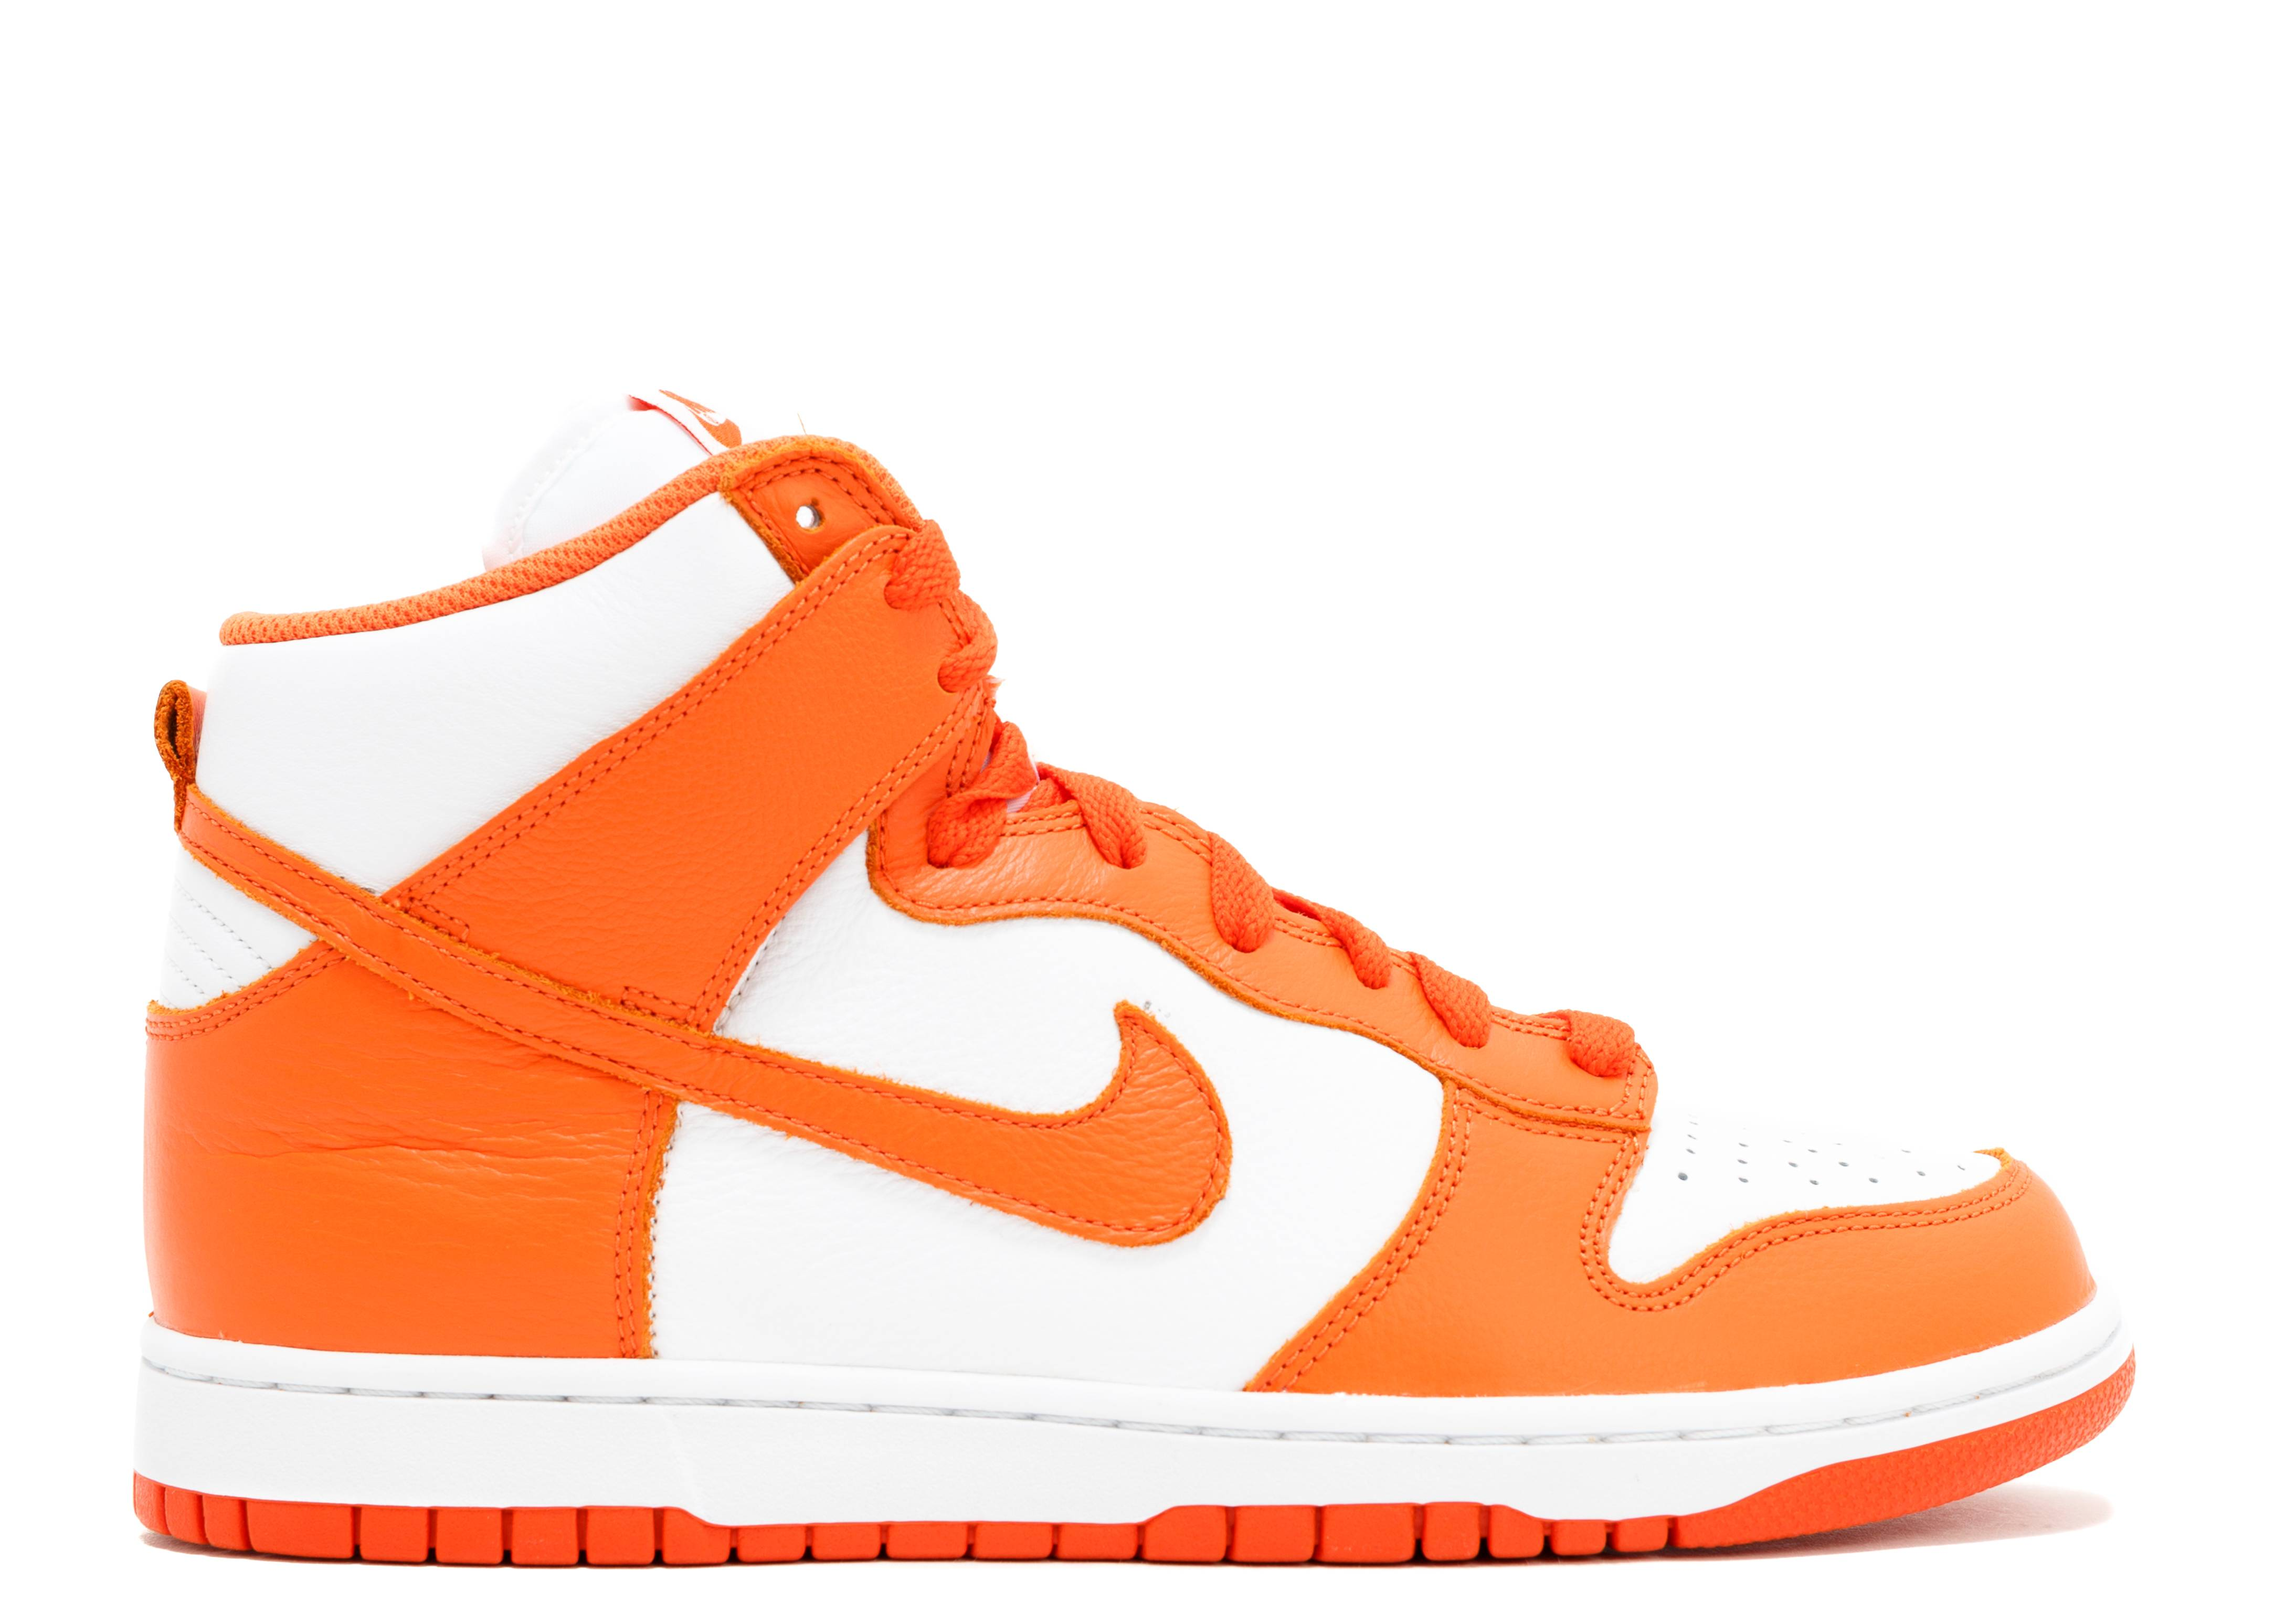 Adidas Dunk Shoes